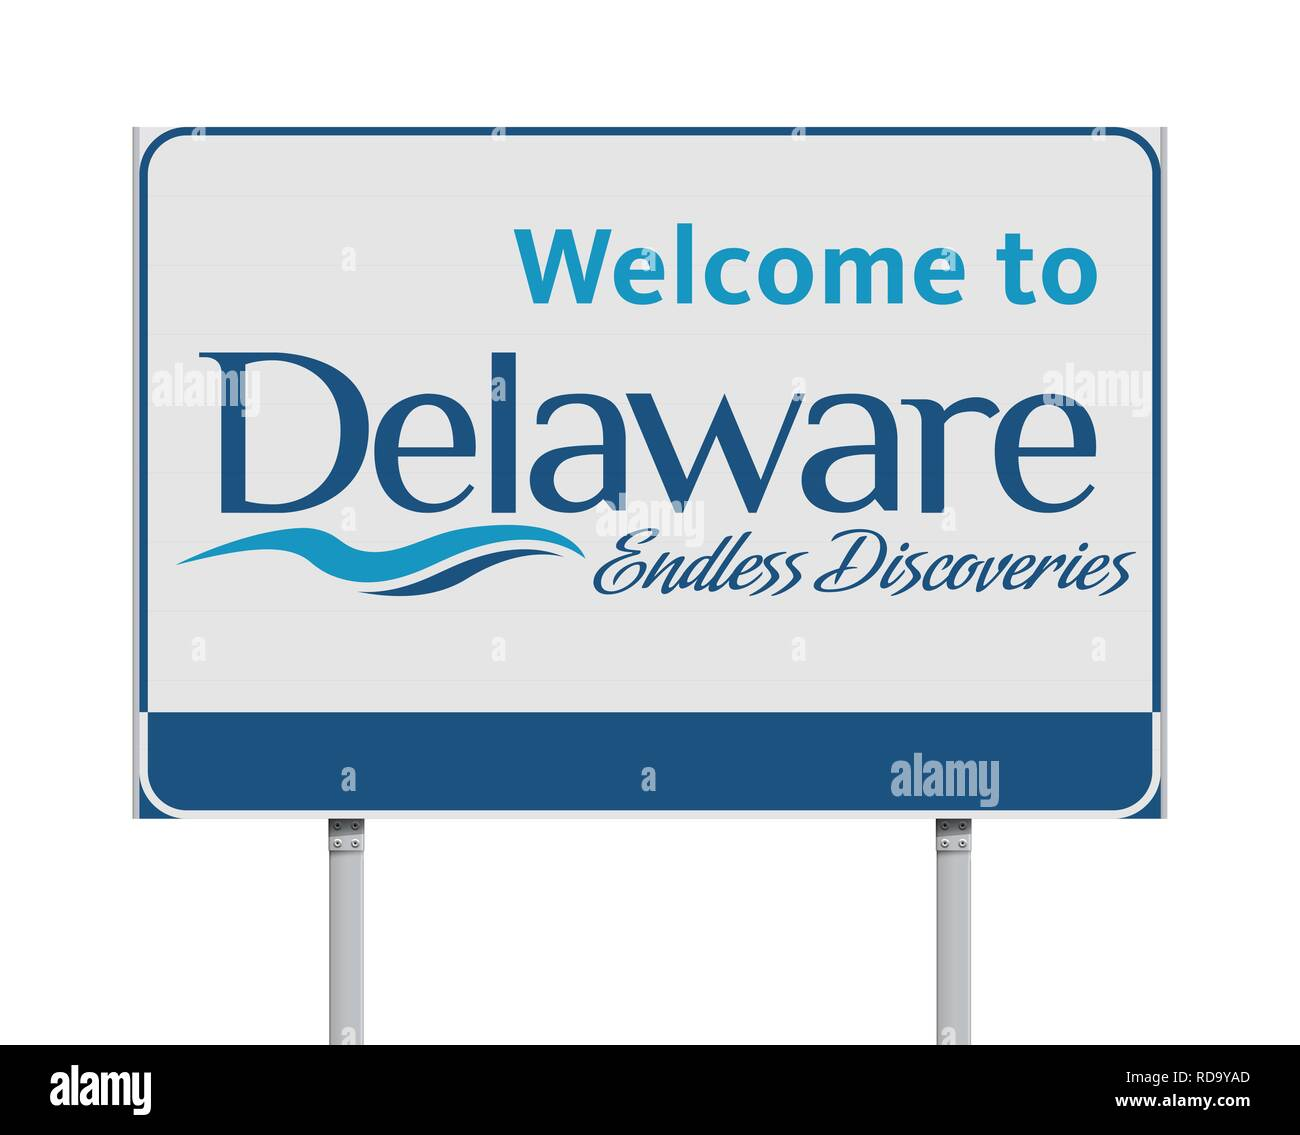 Vector illustration of the Welcome to Delaware road sign - Stock Vector